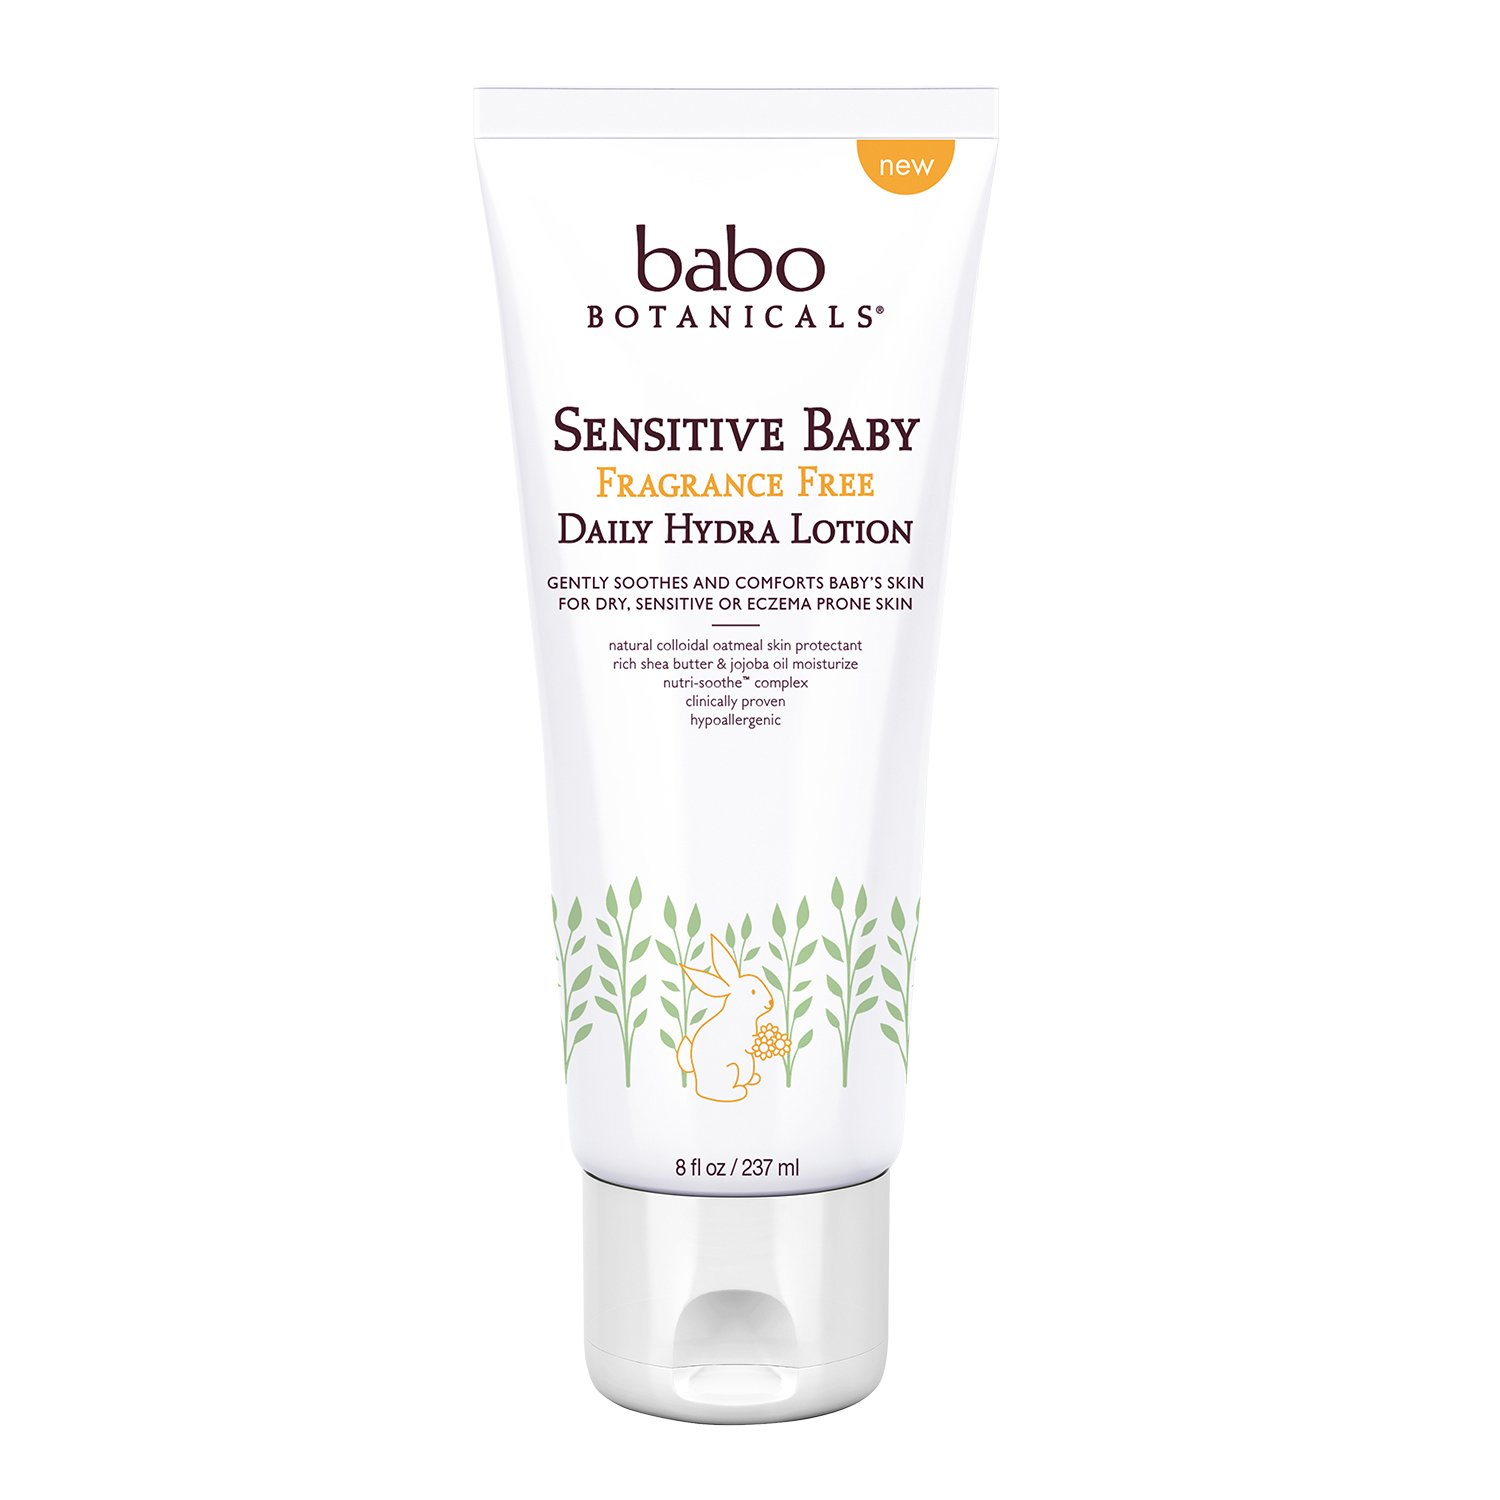 BABO Botanicals Sensitive Baby Fragrance Free Daily Hydra Lotion, 8 Ounce